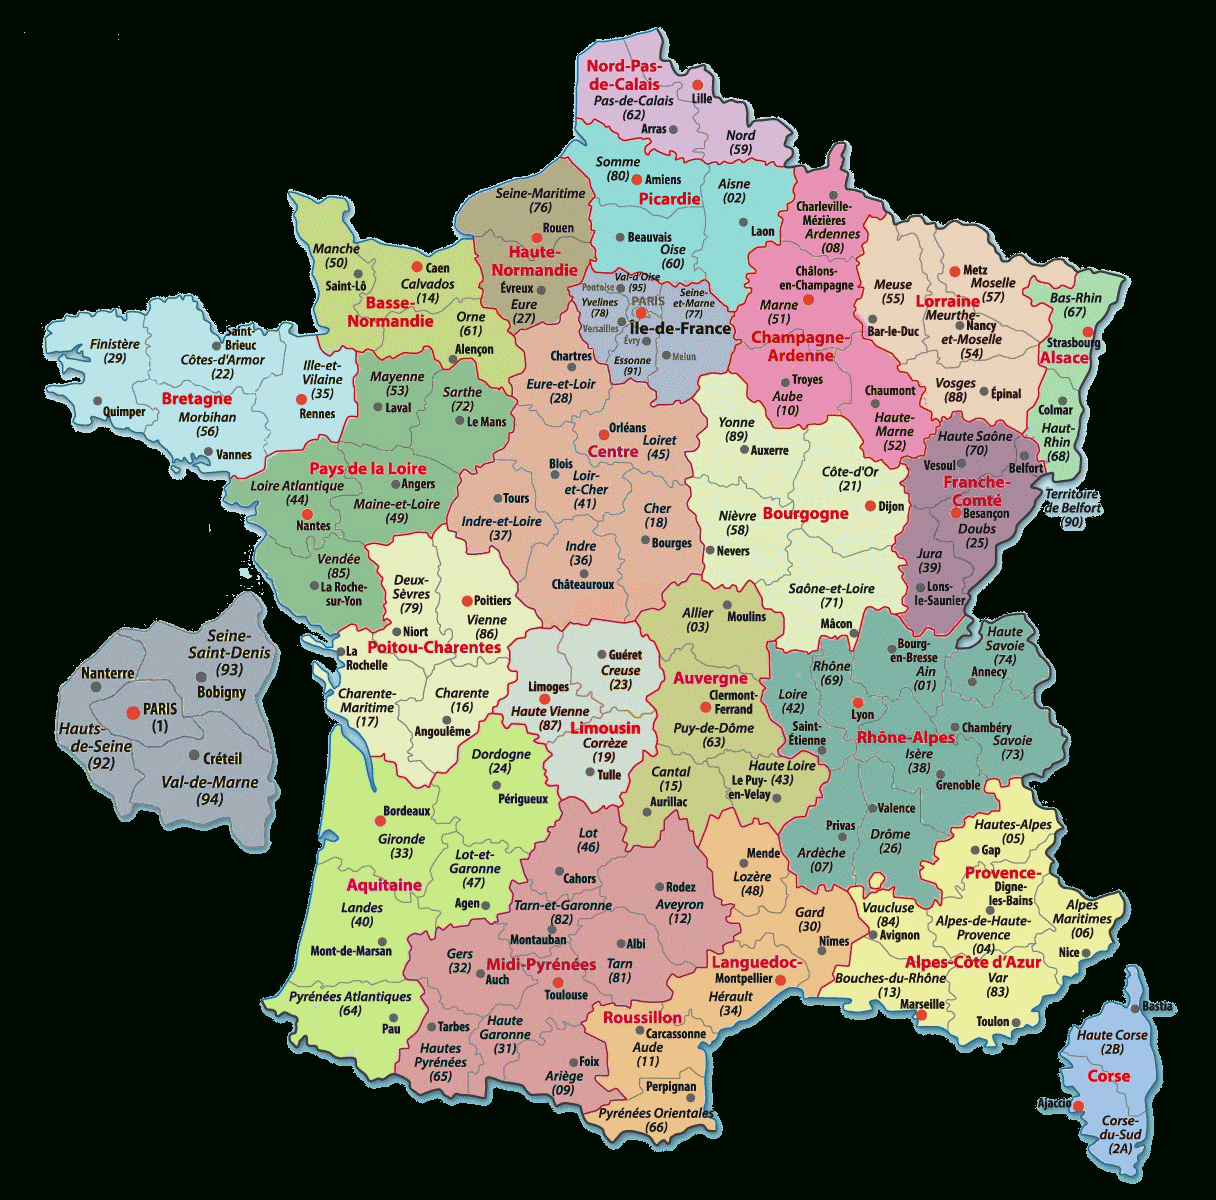 Carte De France Departements : Carte Des Départements De France destiné Départements Et Régions De France